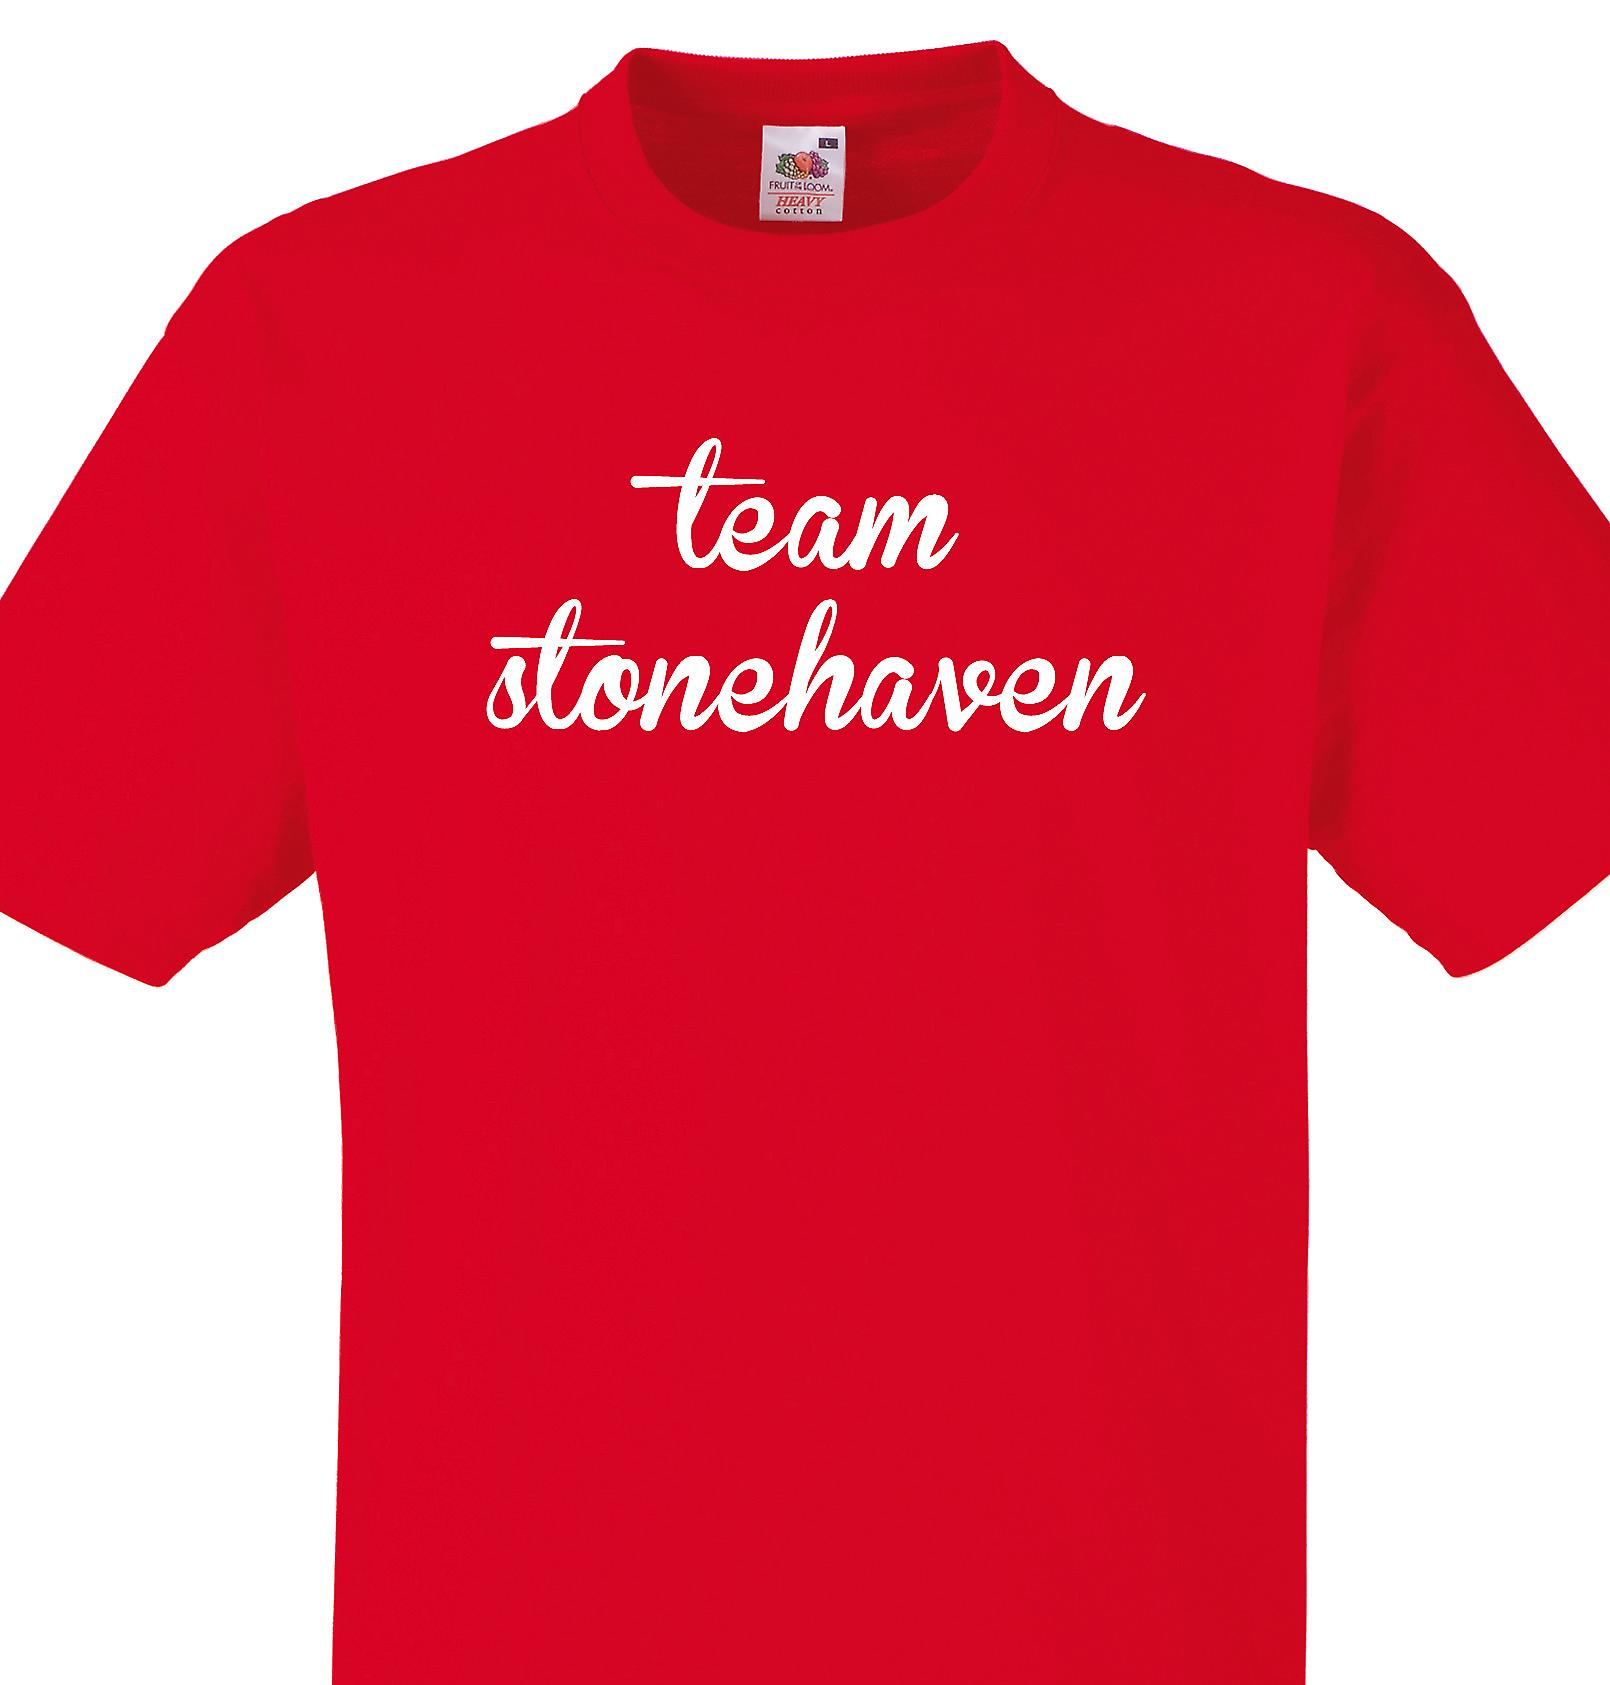 Team Stonehaven Red T shirt